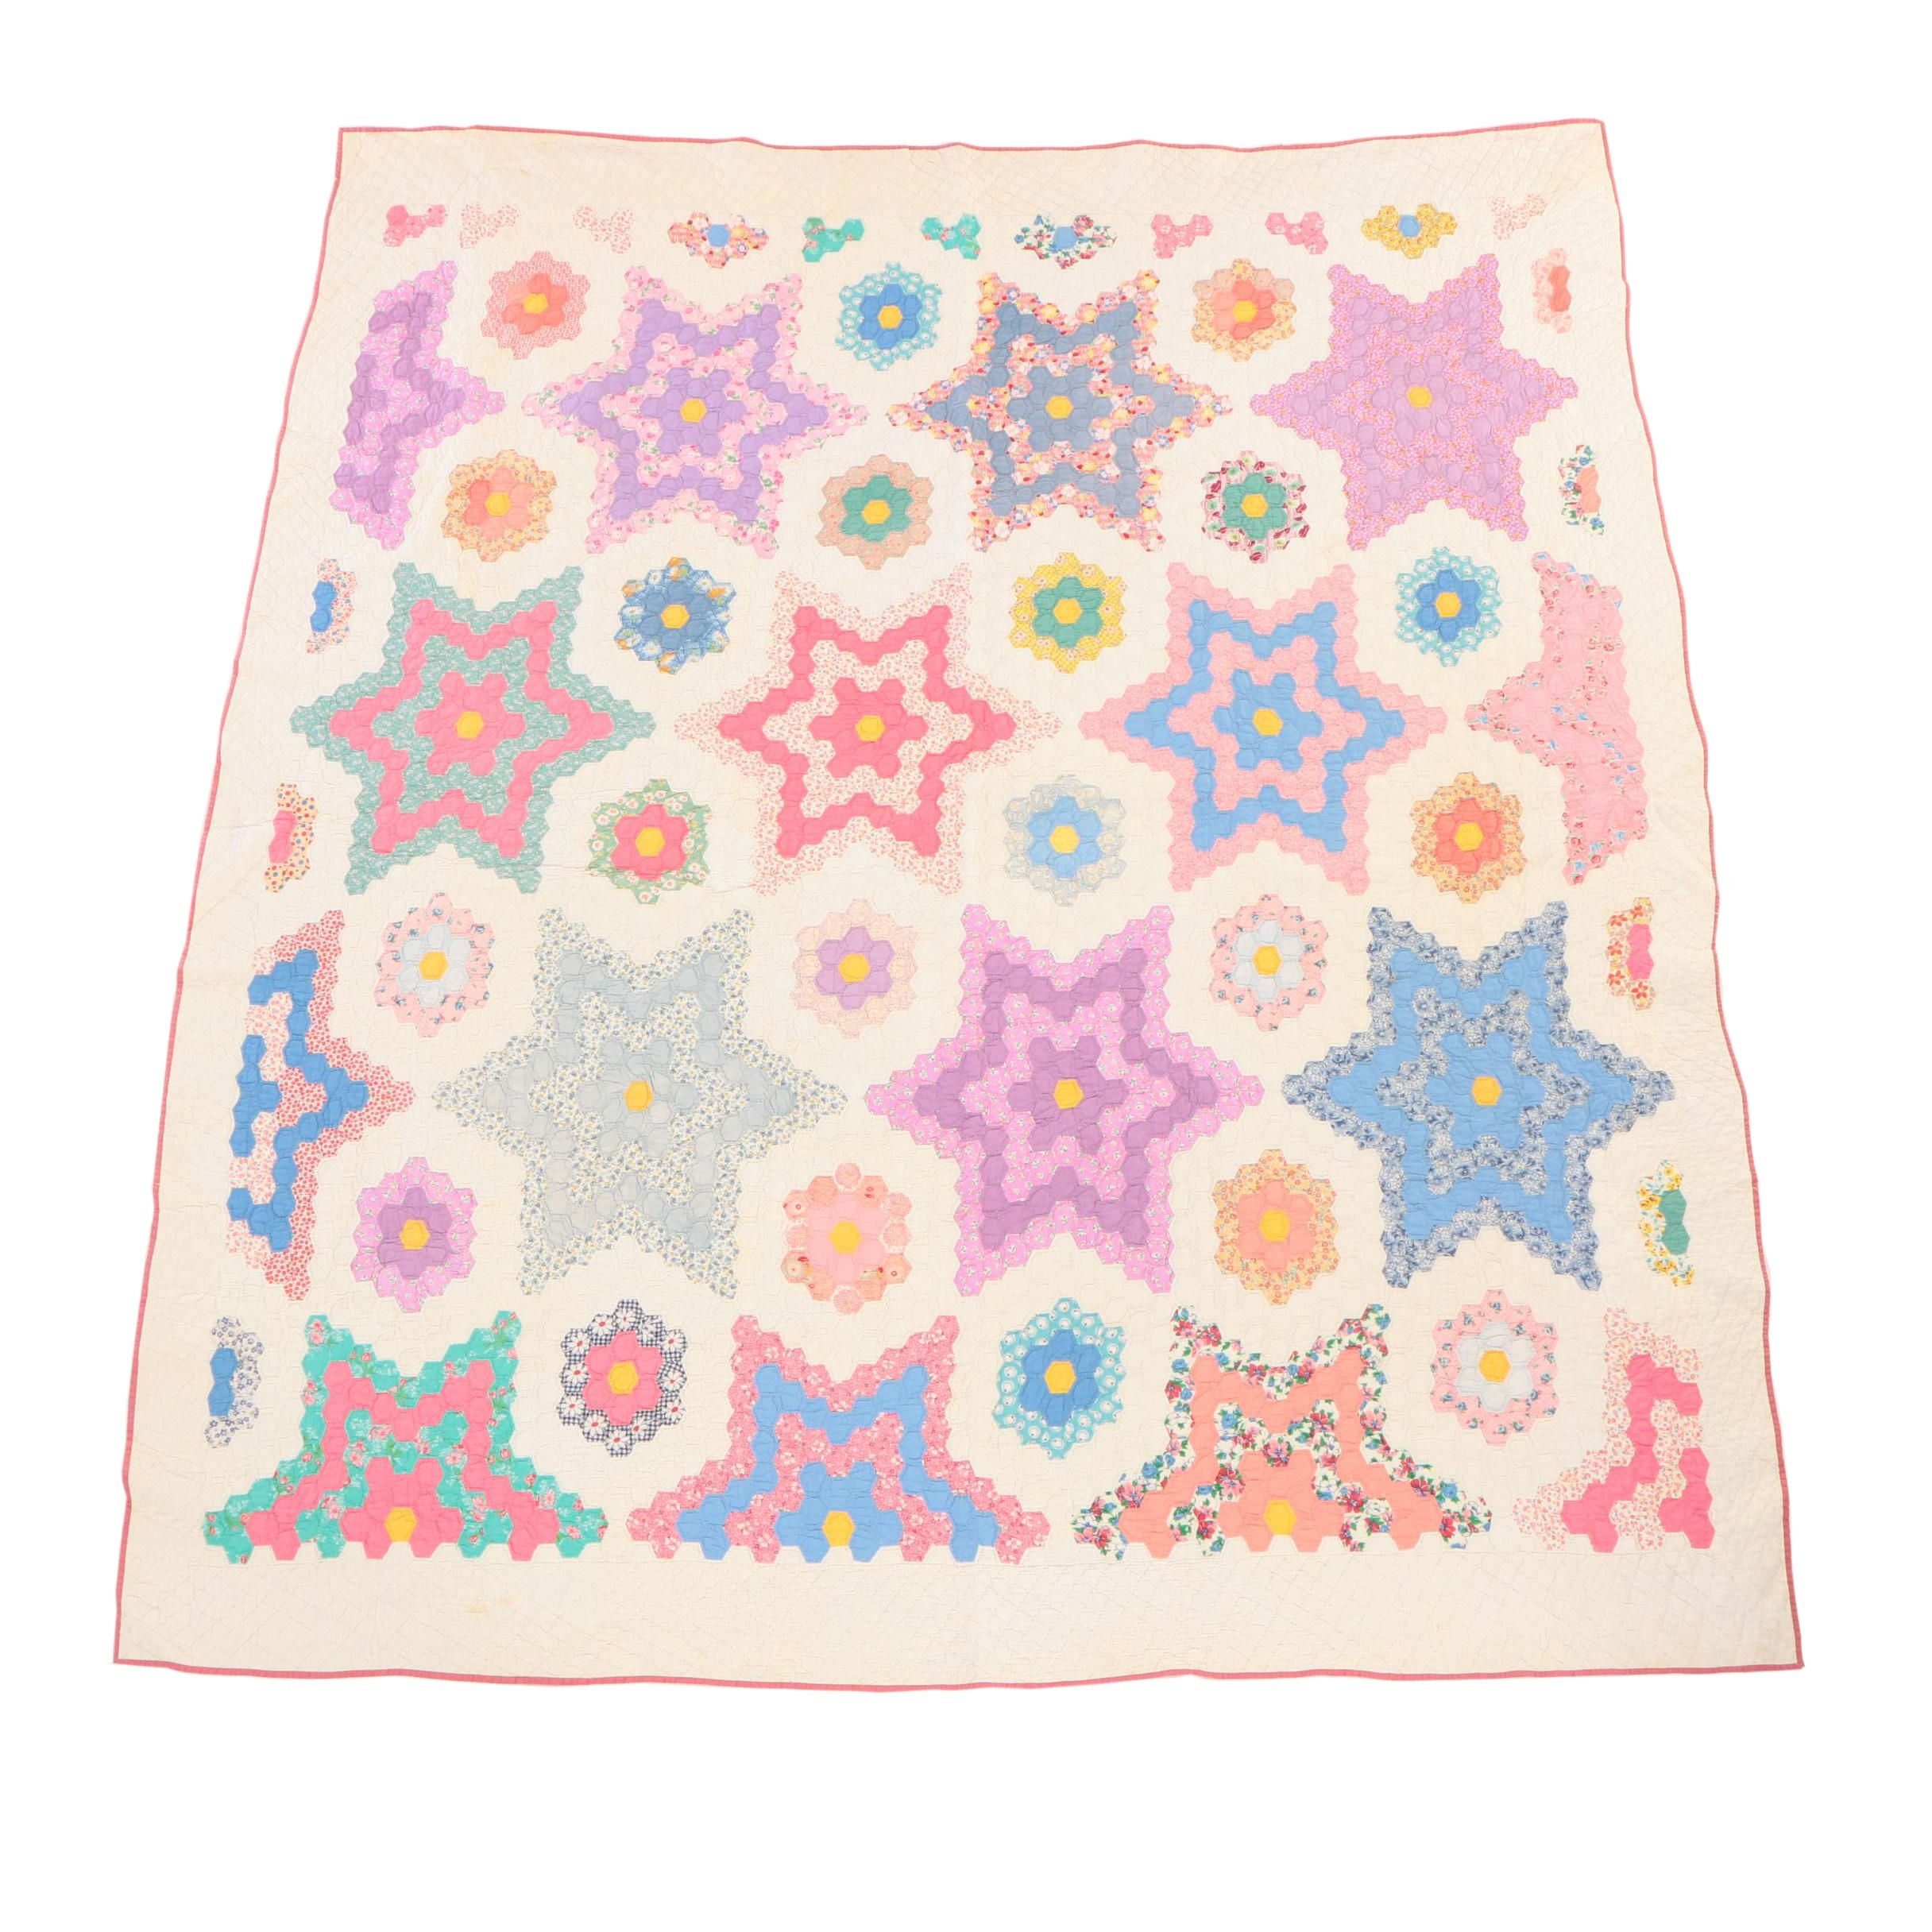 Hand Stitched Honeycomb Pattern Quilt